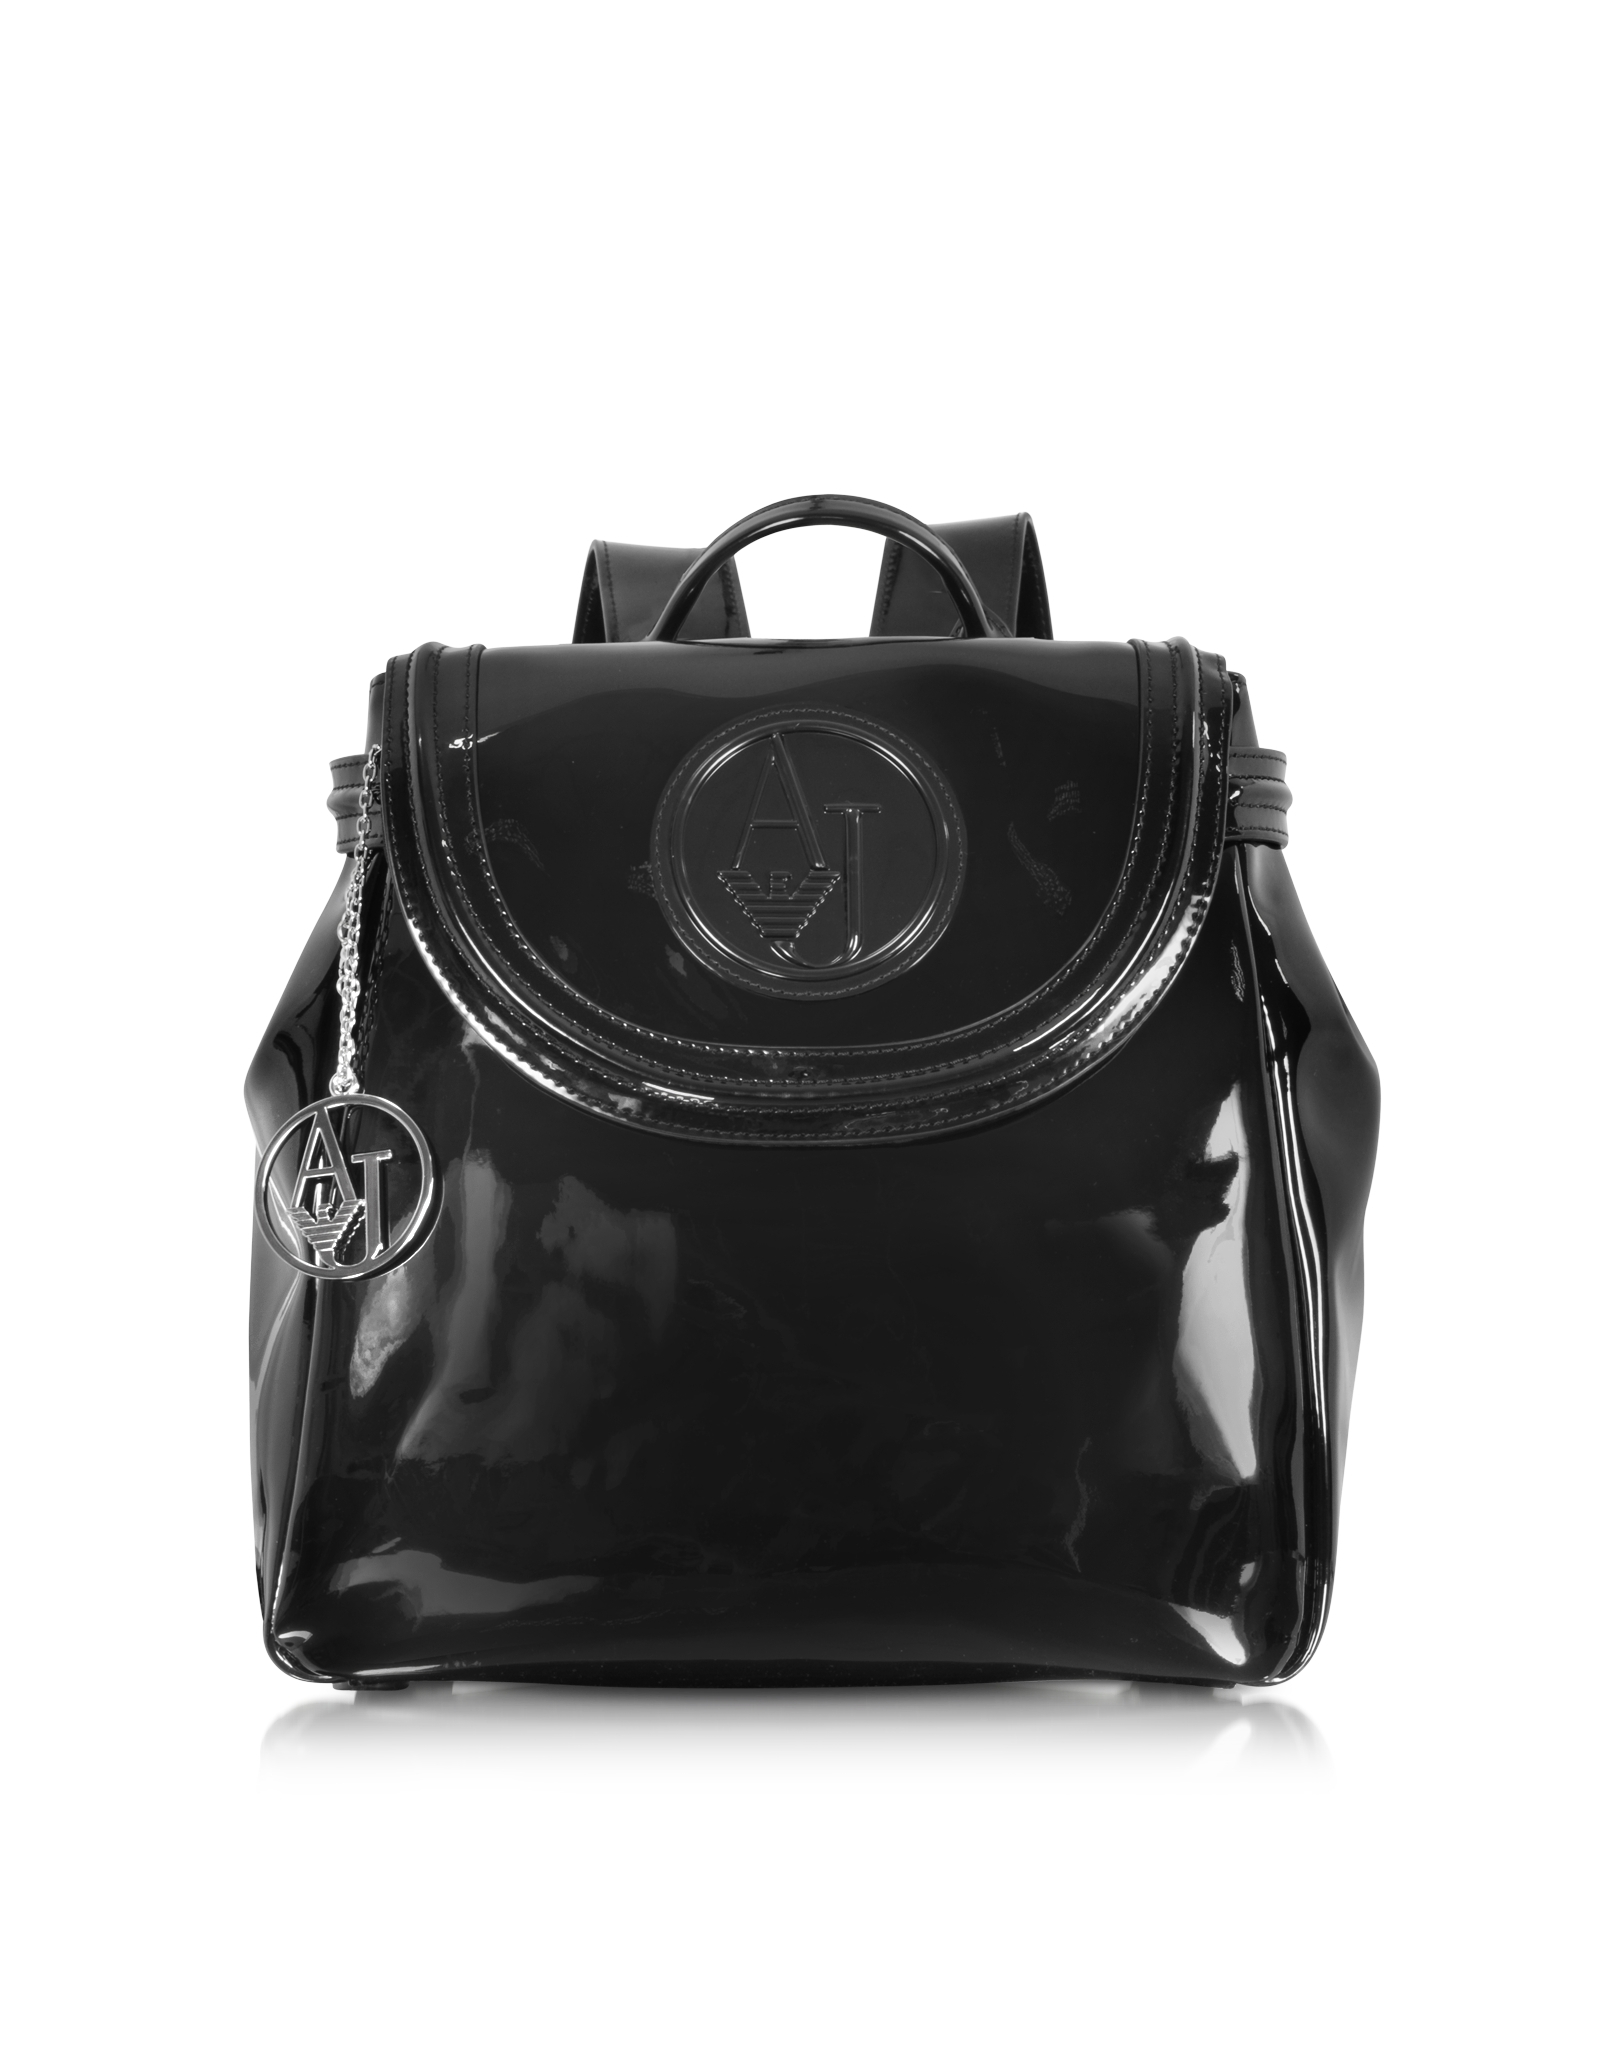 Armani Jeans Black Patent Eco Leather Backpack in Black - Lyst c337b8ac54803